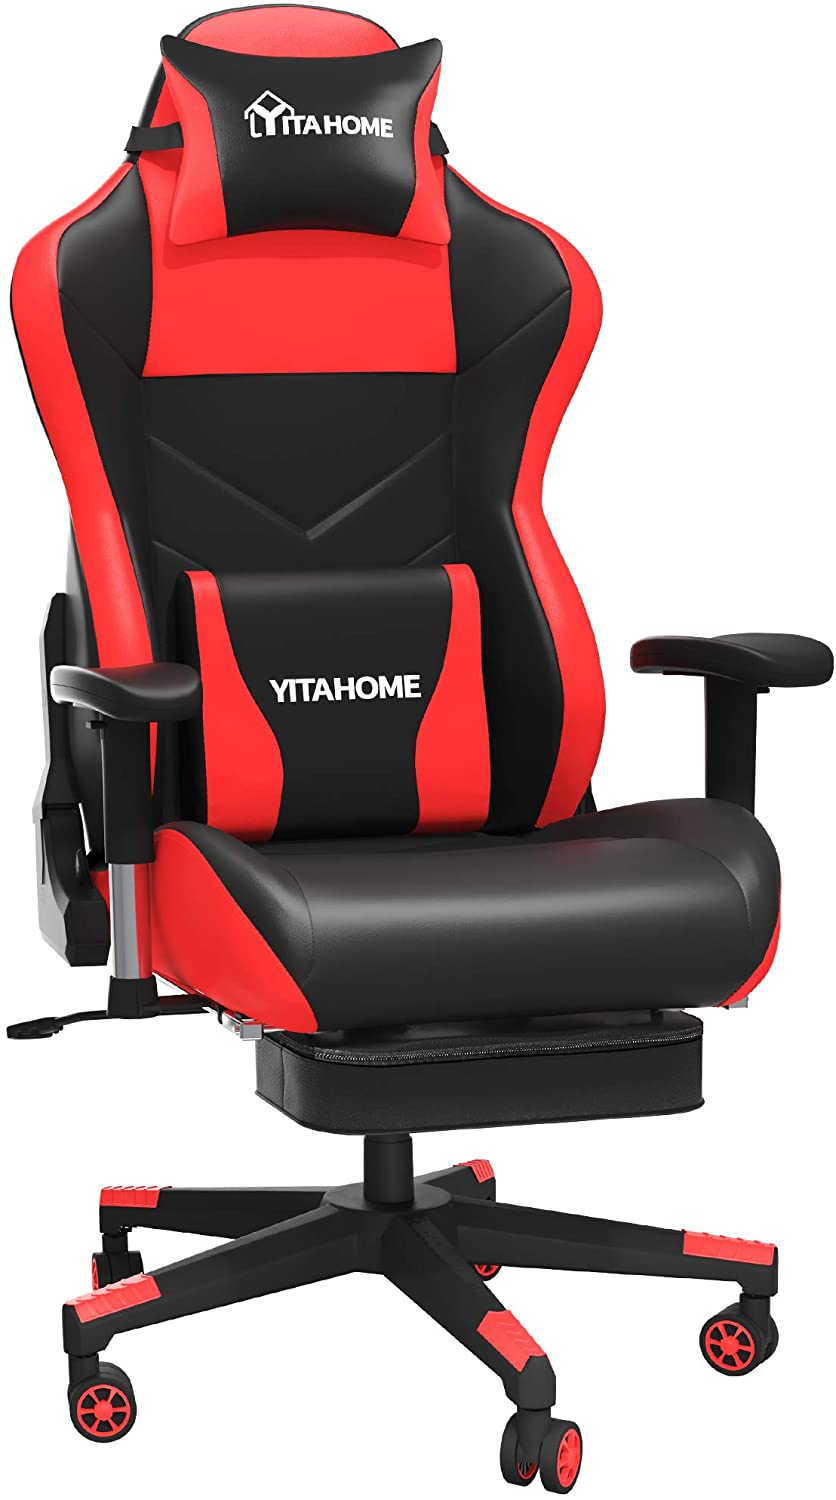 YITAHOME Massage Gaming Chair with Footrest Big